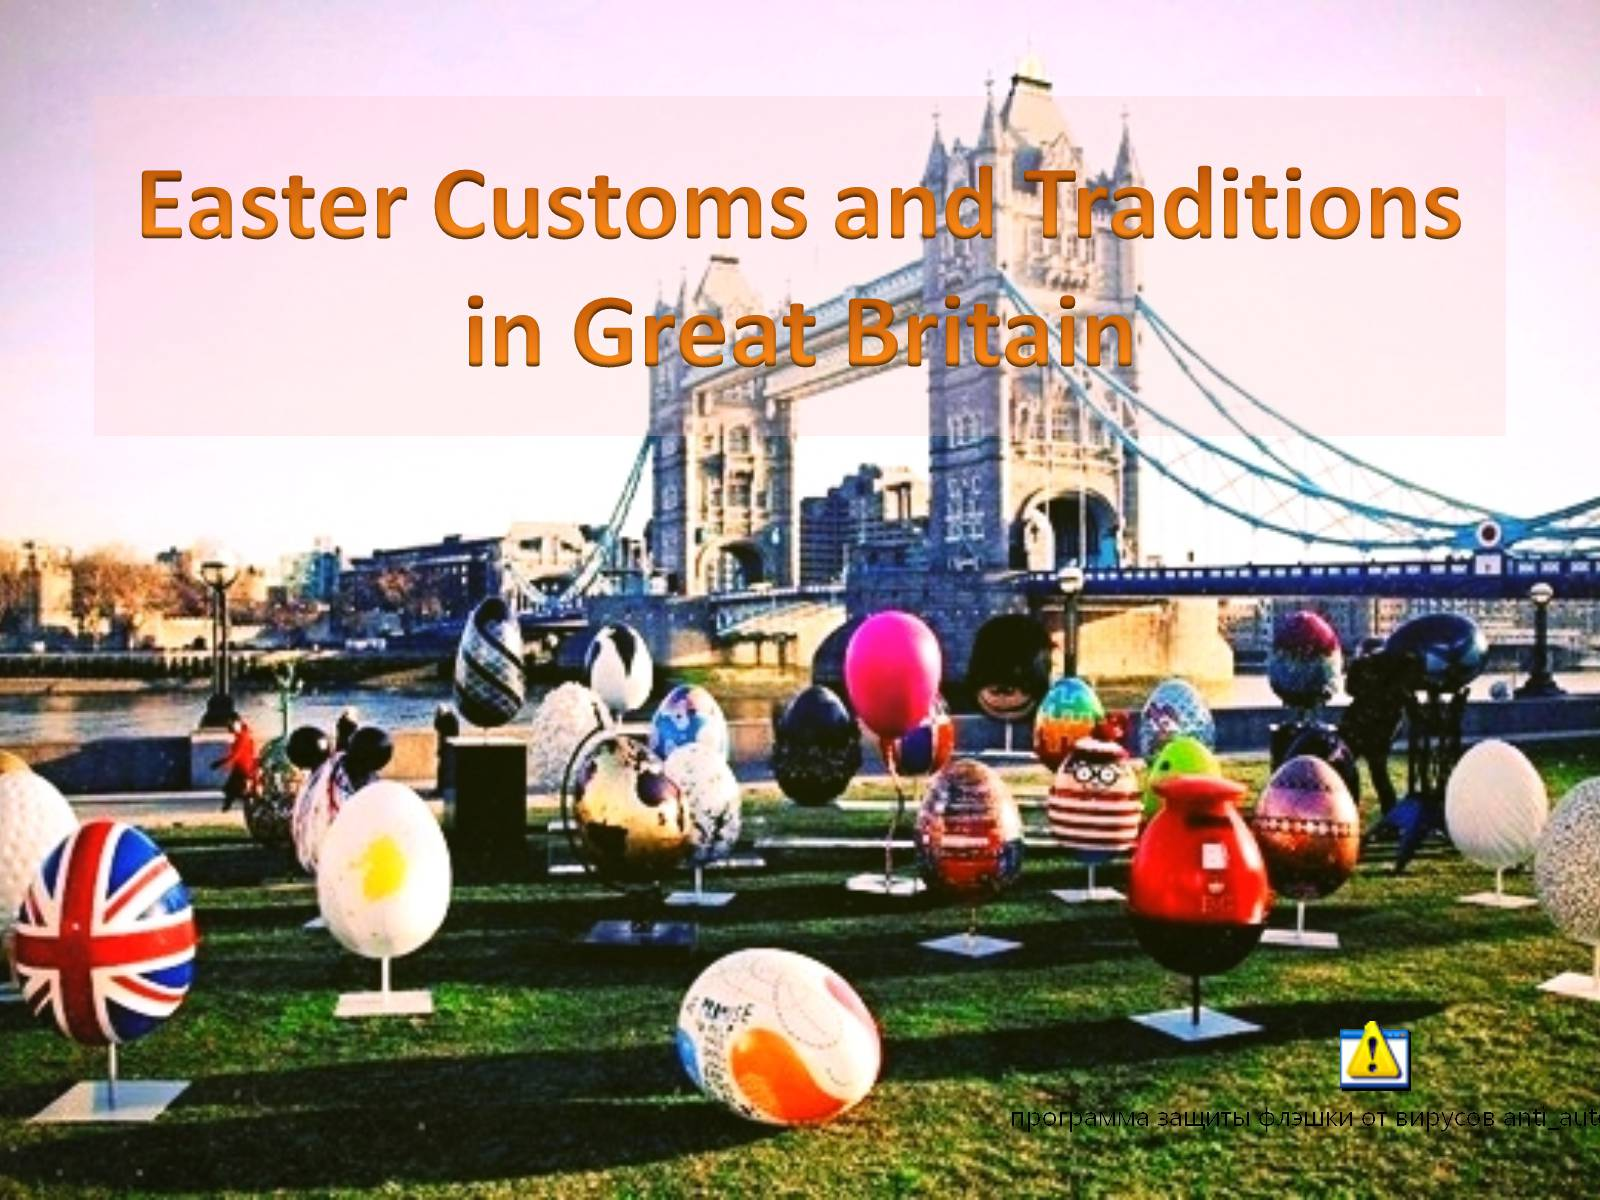 Презентація на тему «Easter Customs and Traditions in Great Britain» - Слайд #1